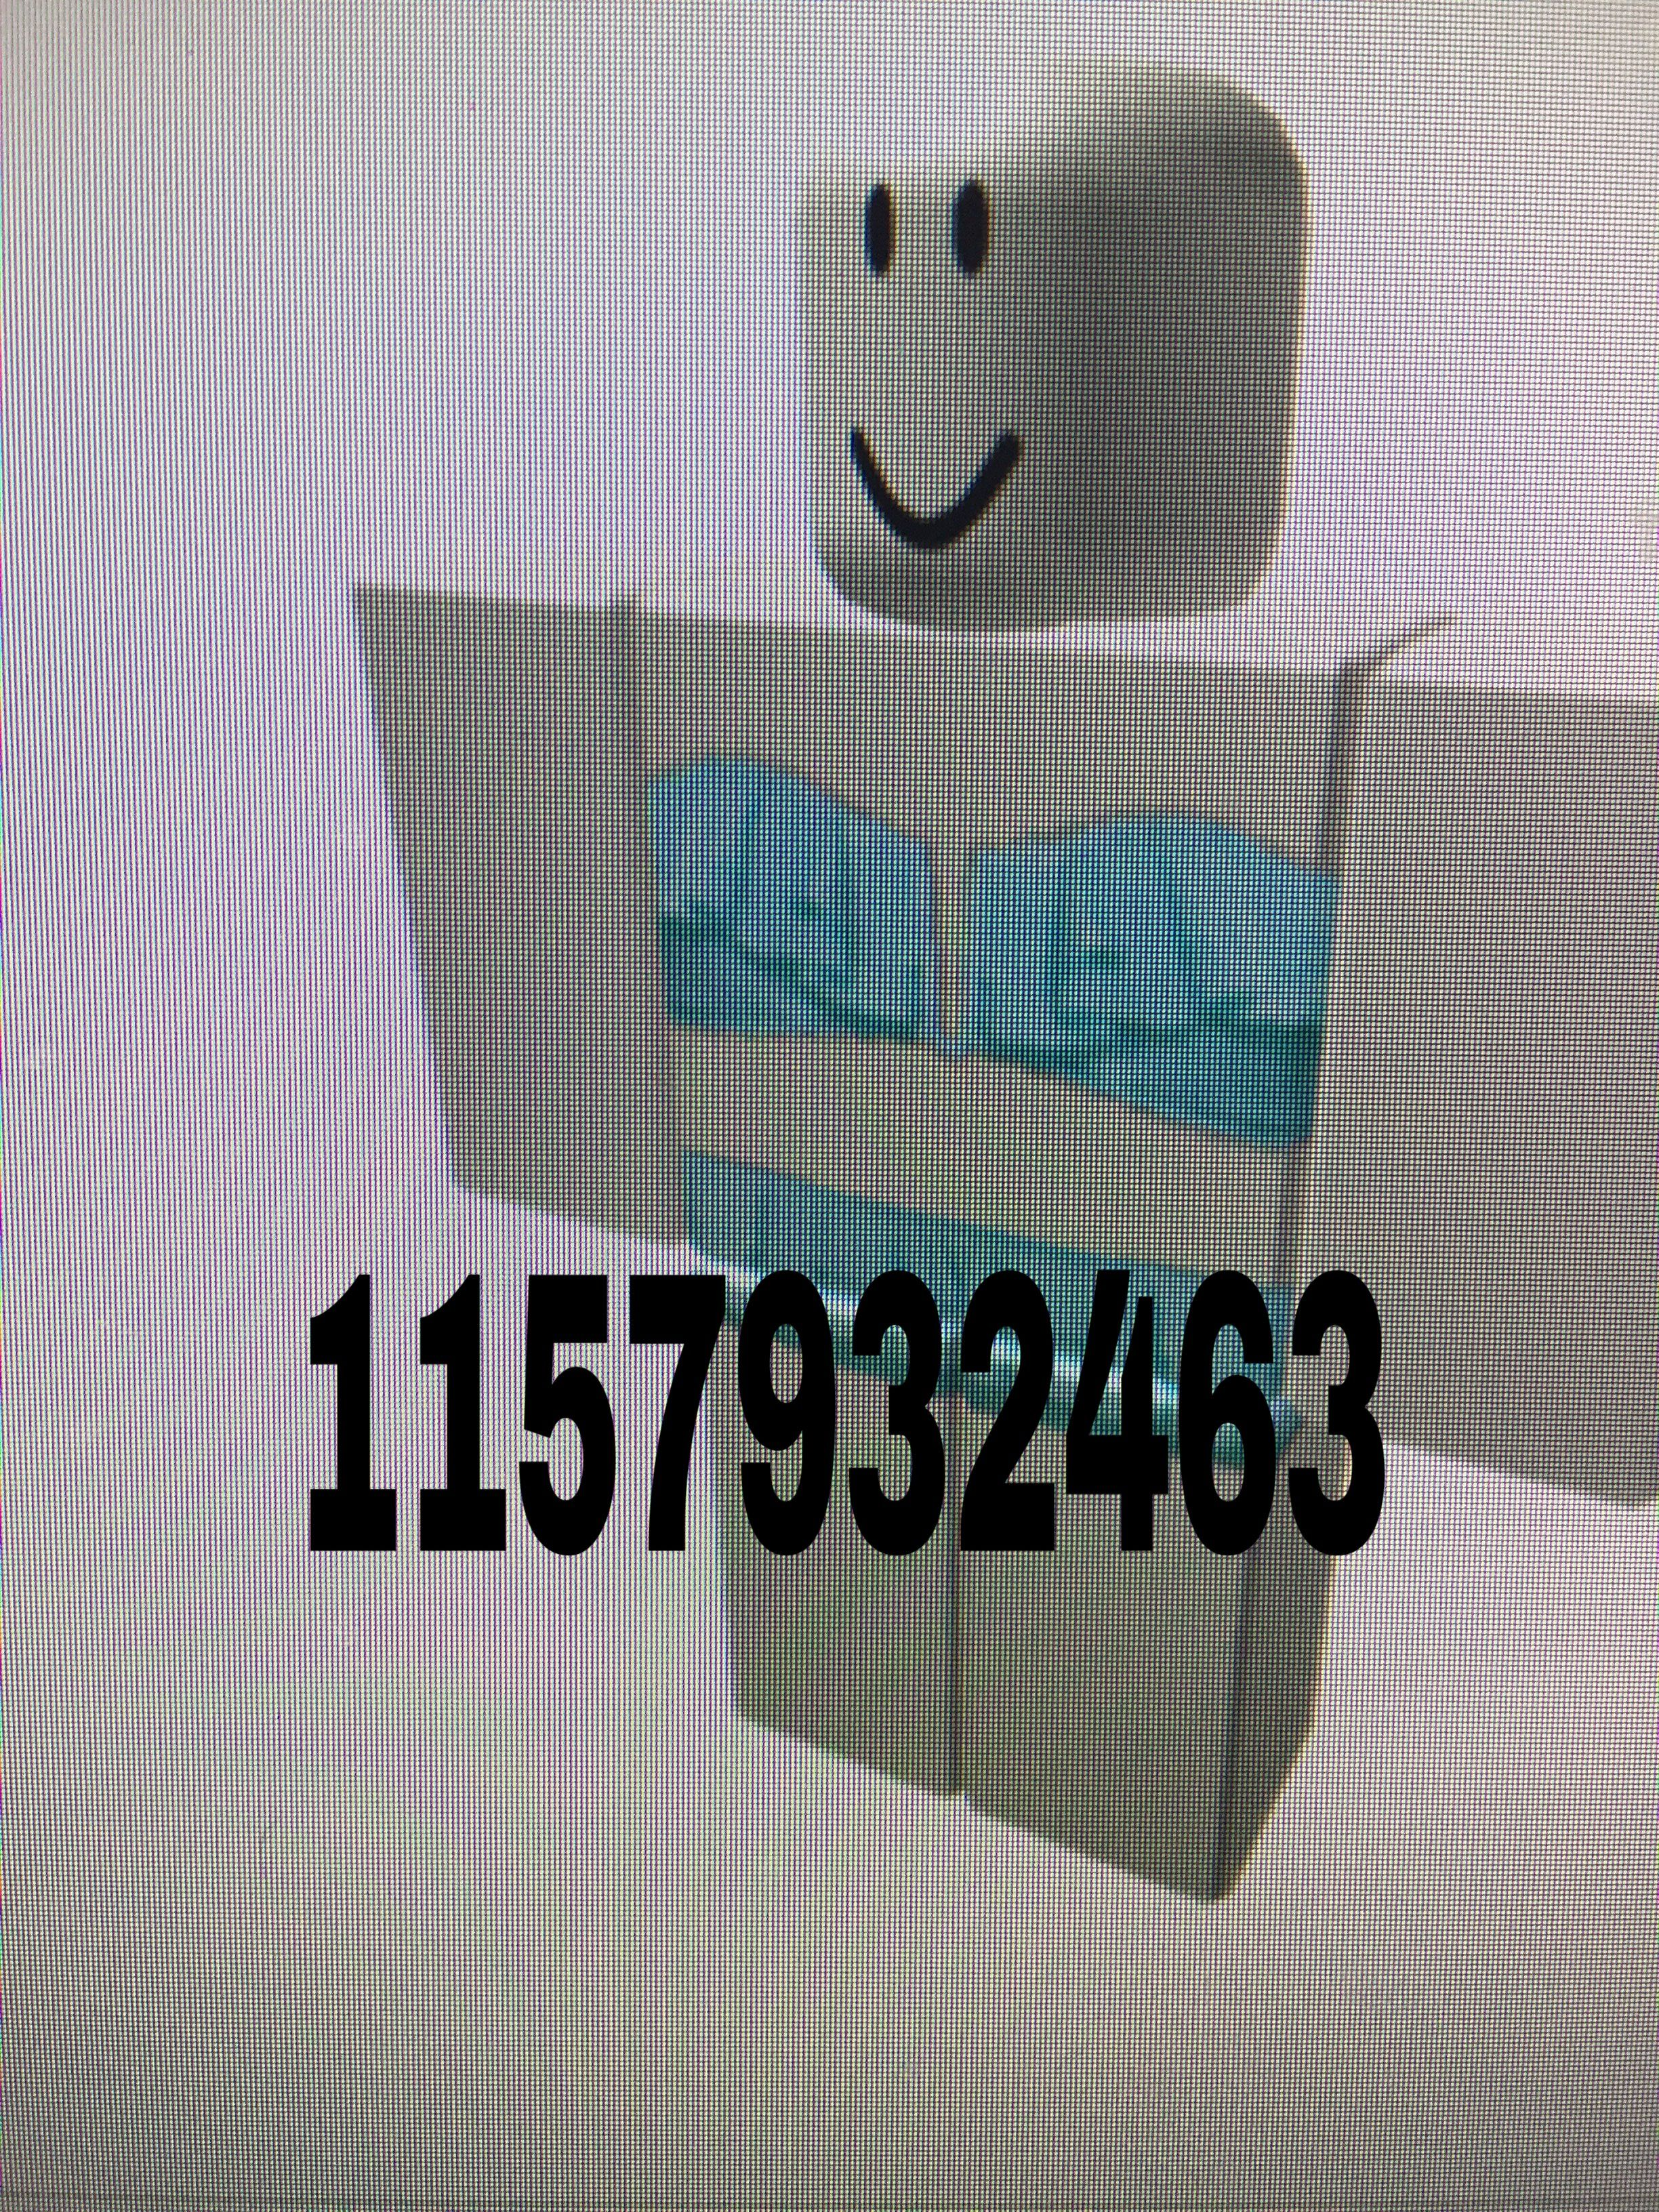 Pin By Leeann Dake On Roblox High School Codes Roblox Codes Roblox House Plans With Pictures